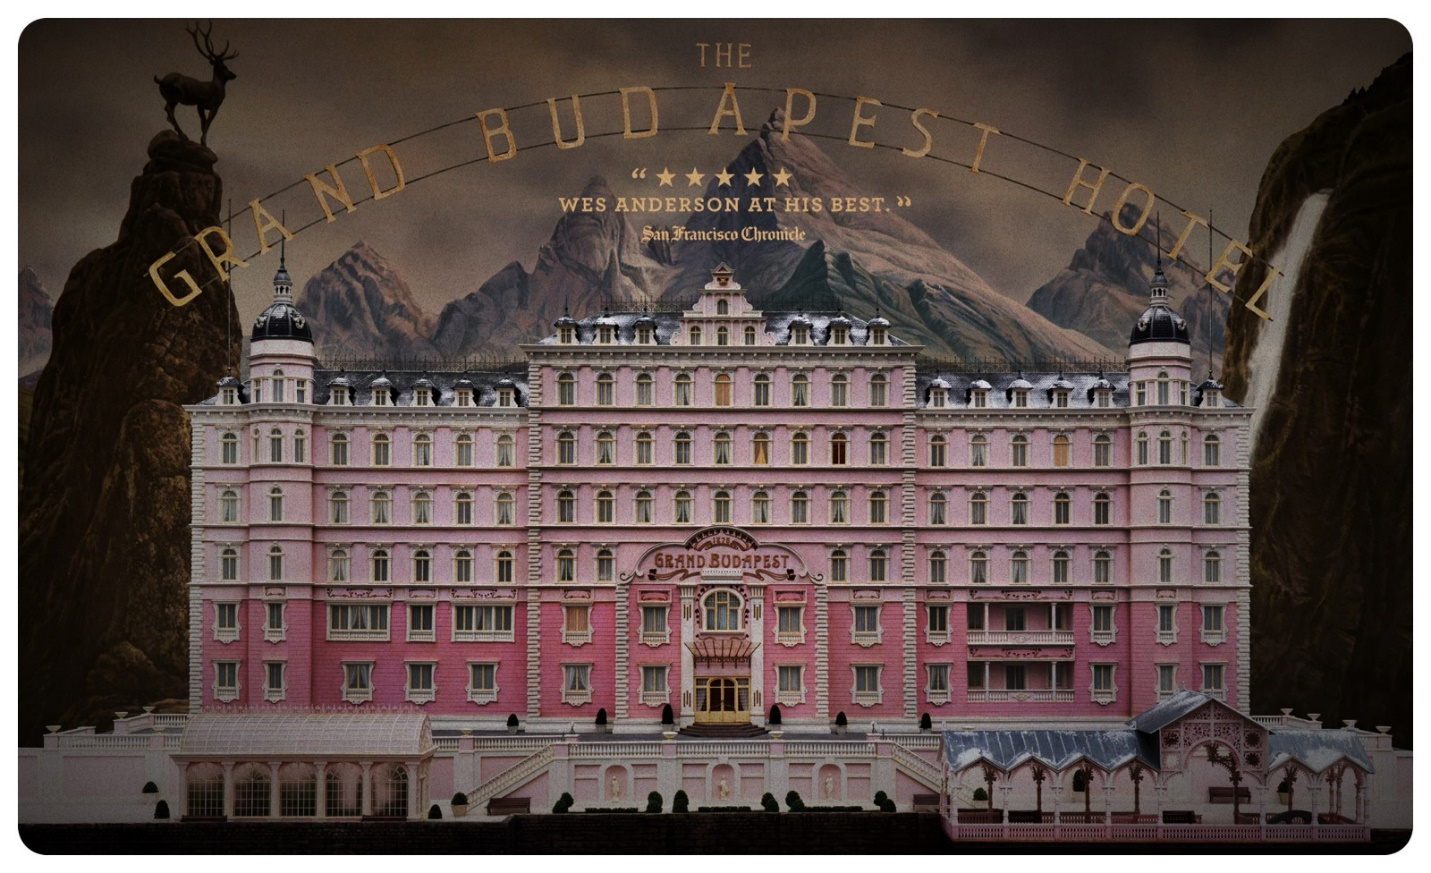 The Grand Budapest Hotel is a 2014 comedy film centering on a concierge who befriends the lobby boy to prove that he is not guilty after he is wrongfully accused of killing an affluent hotel guest.